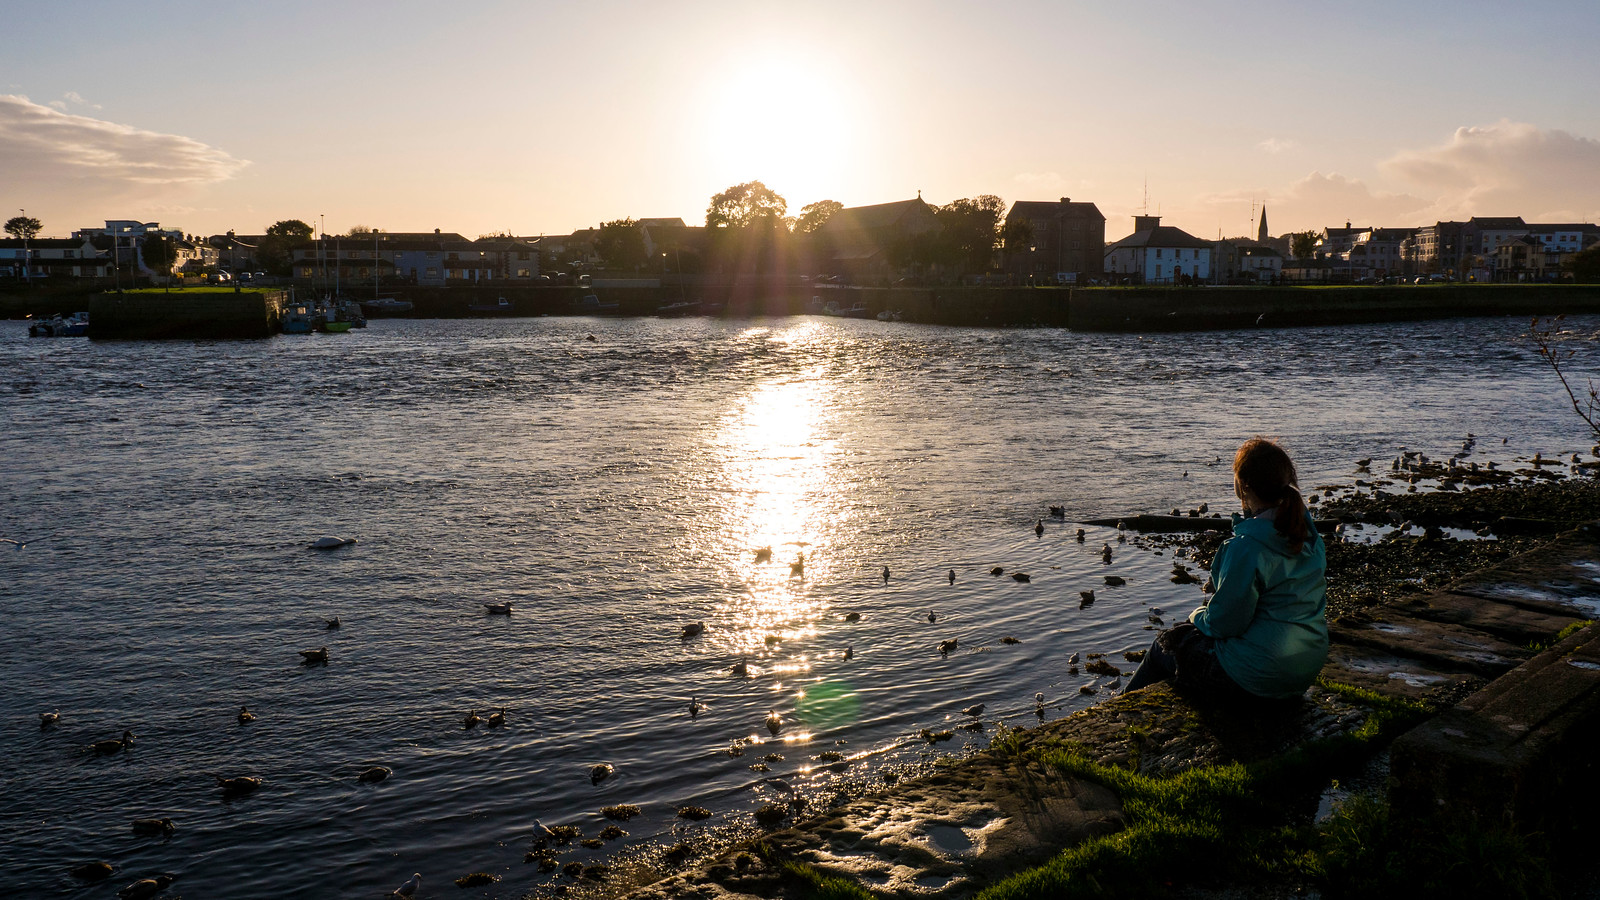 The Long Walk in Galway - Walking to the pier and waterfront in Galway - Top things to do in Galway